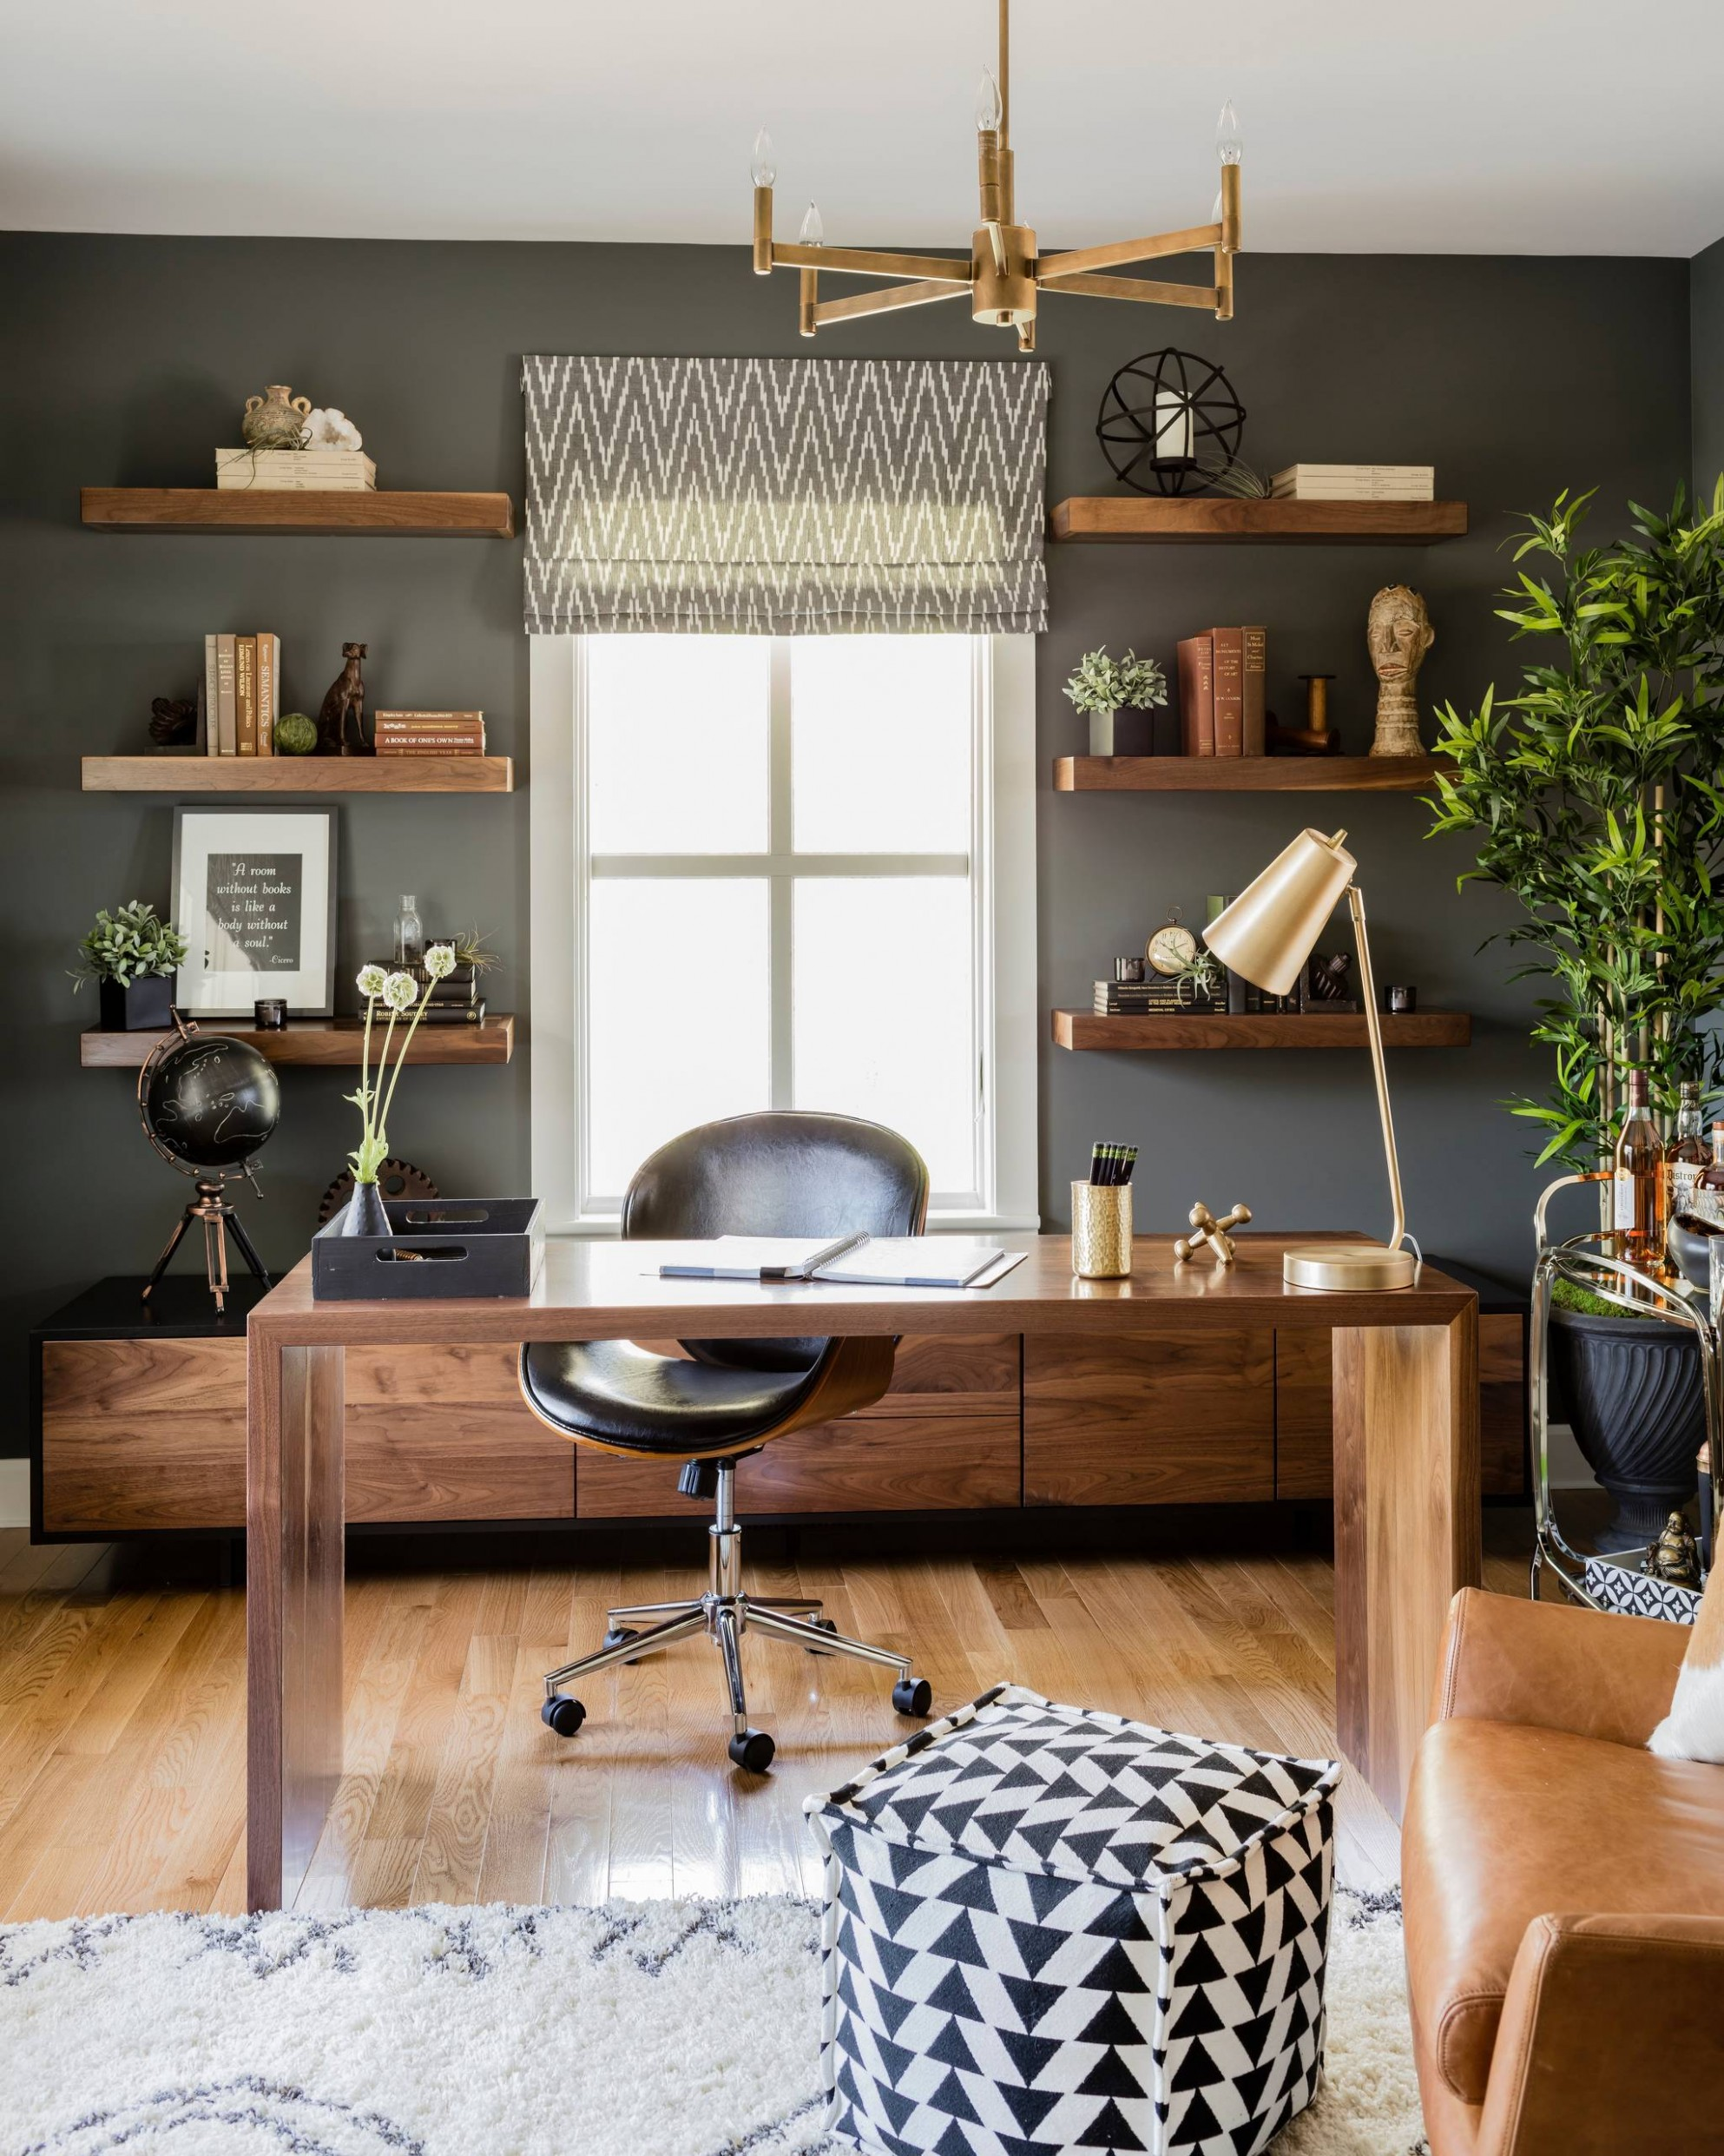 10 Beautiful Home Office Pictures & Ideas November 10  Houzz - Home Office Ideas For Her